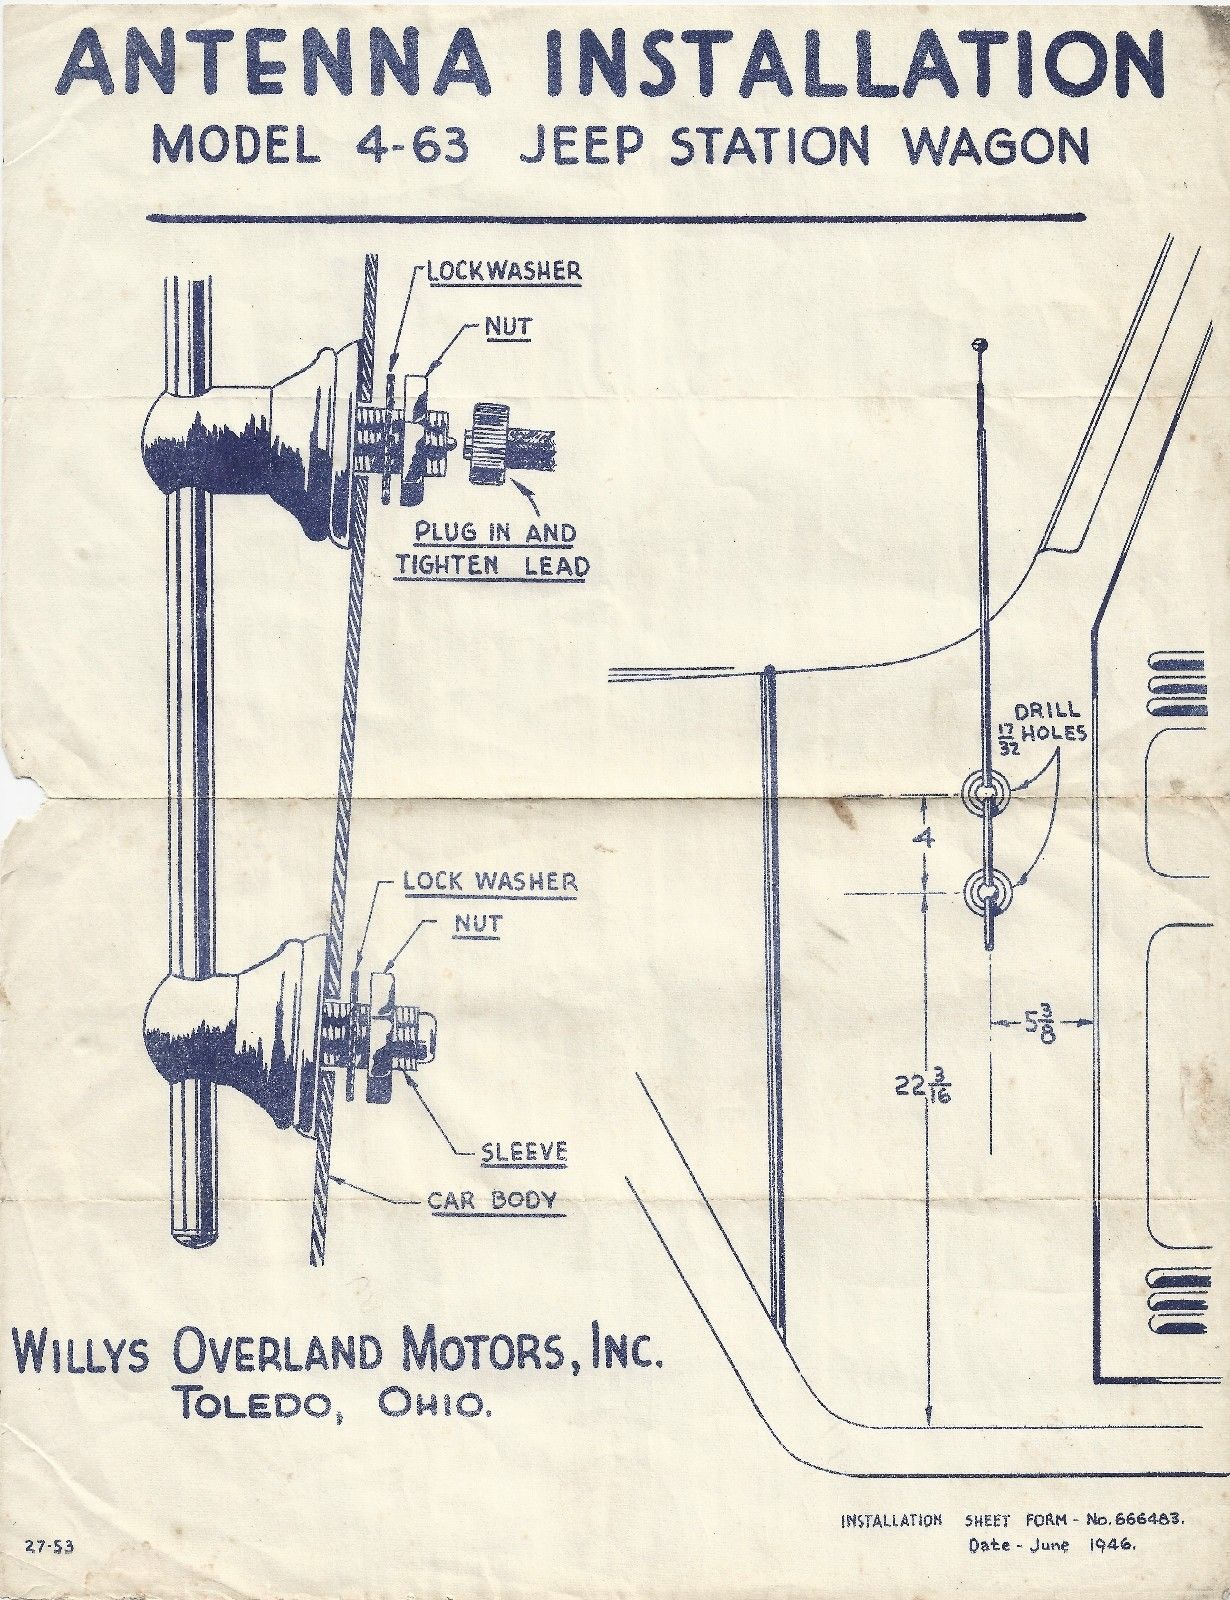 Ewillys Your Source For Jeep And Willys Deals Mods More M38a1 Trailer Wiring Diagram Receptacle 1946 Document Wagon Anntena Installation